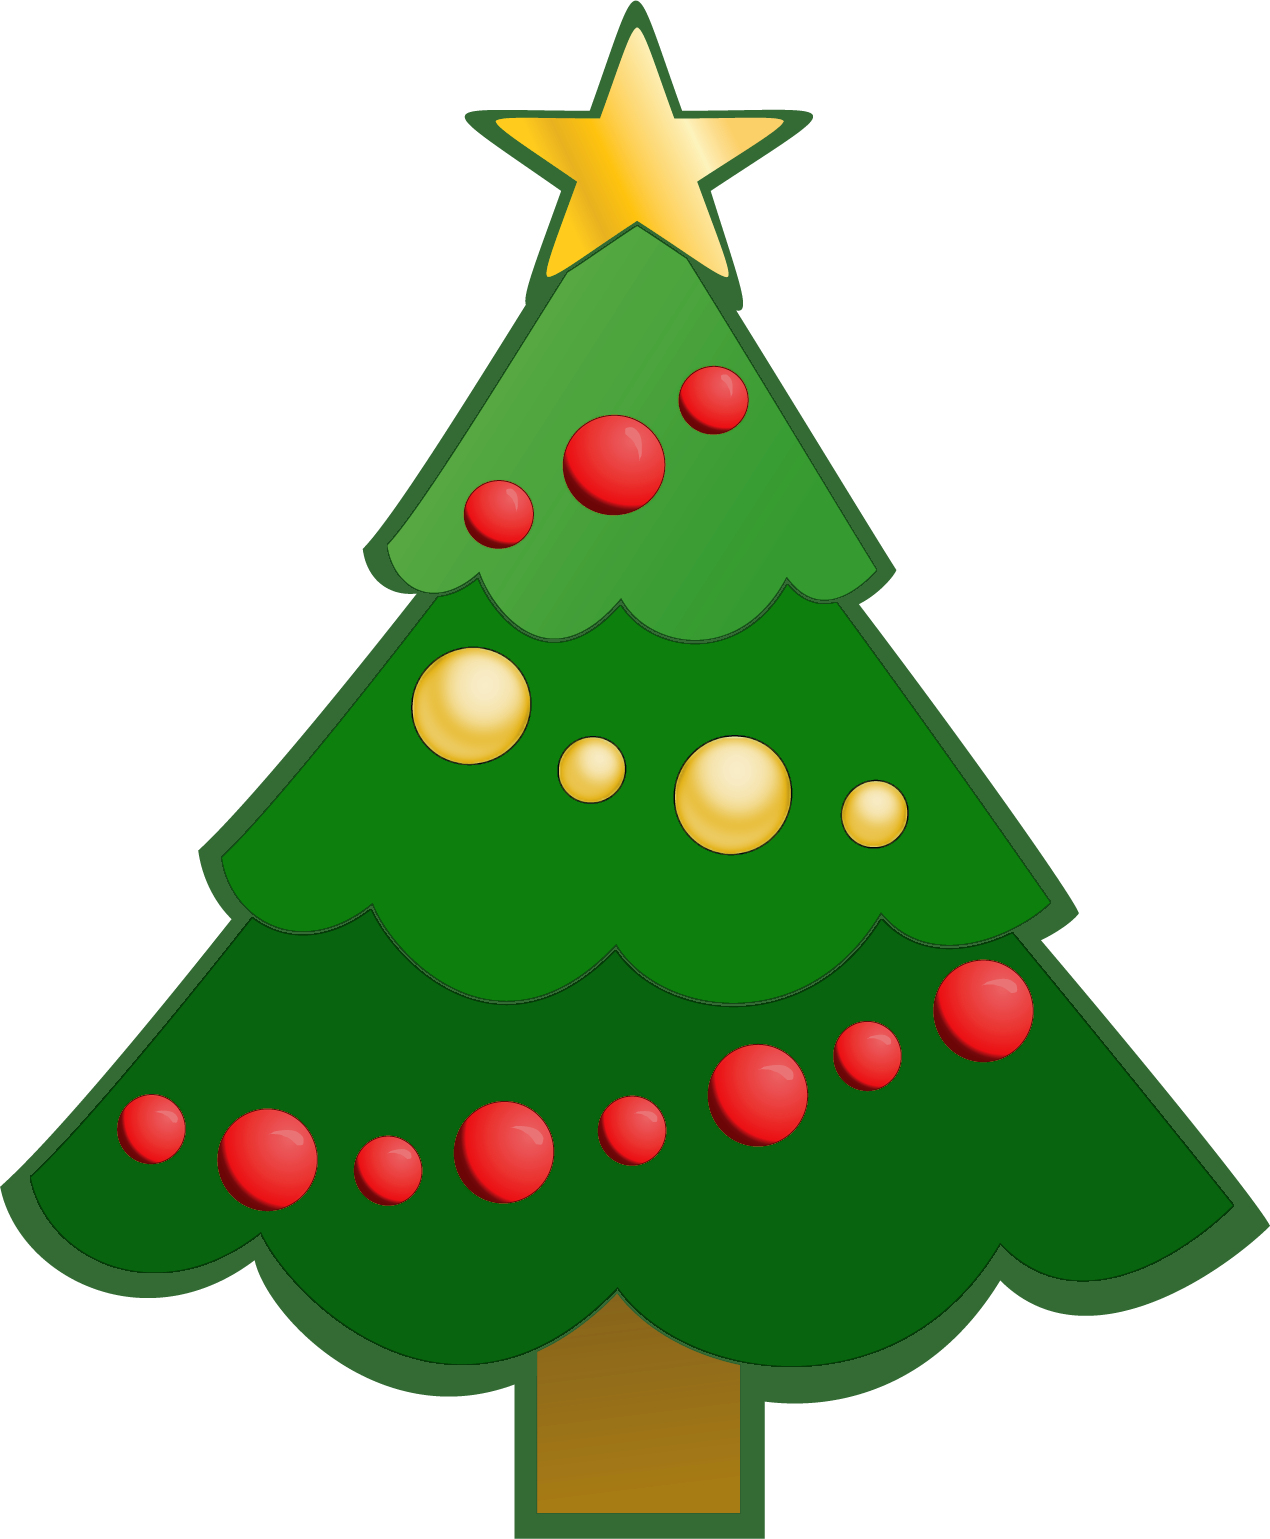 Christmas tree family clipart banner free Easy Christmas Clipart at GetDrawings.com | Free for personal use ... banner free